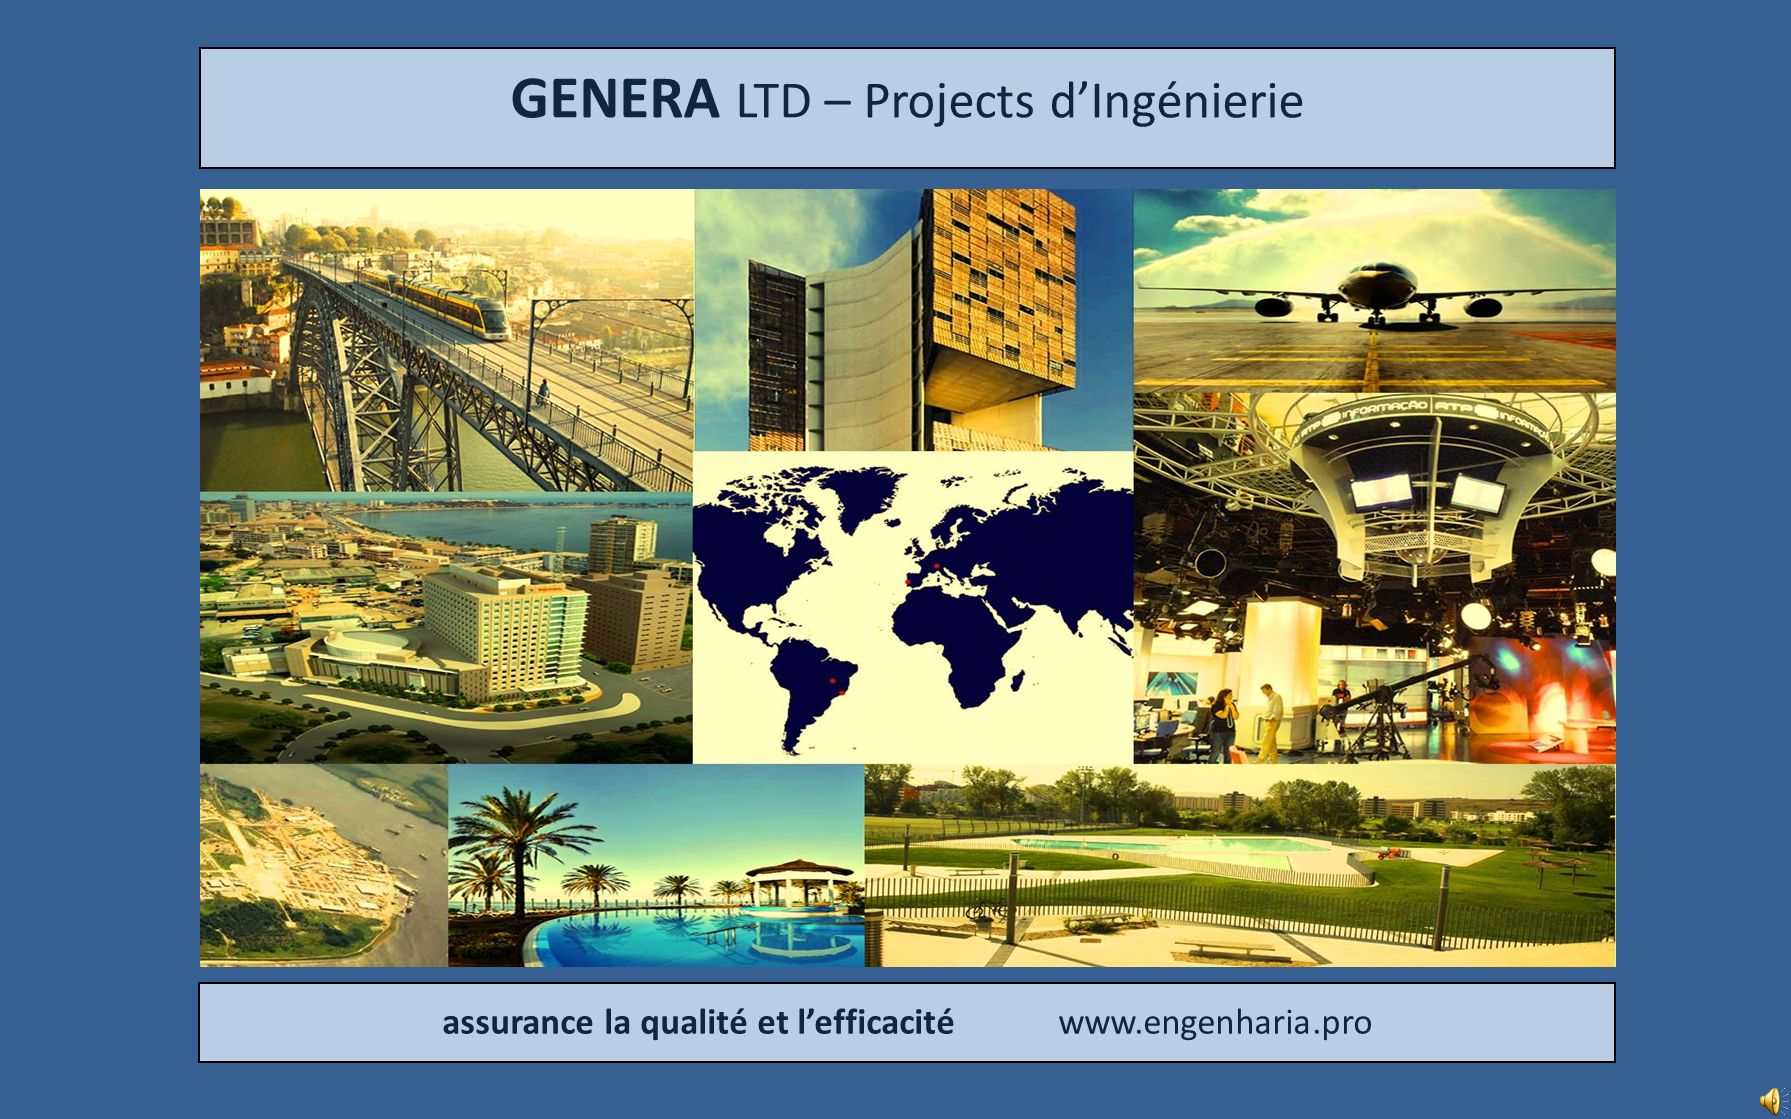 GENERA LTD – Projects d'Ingénierie